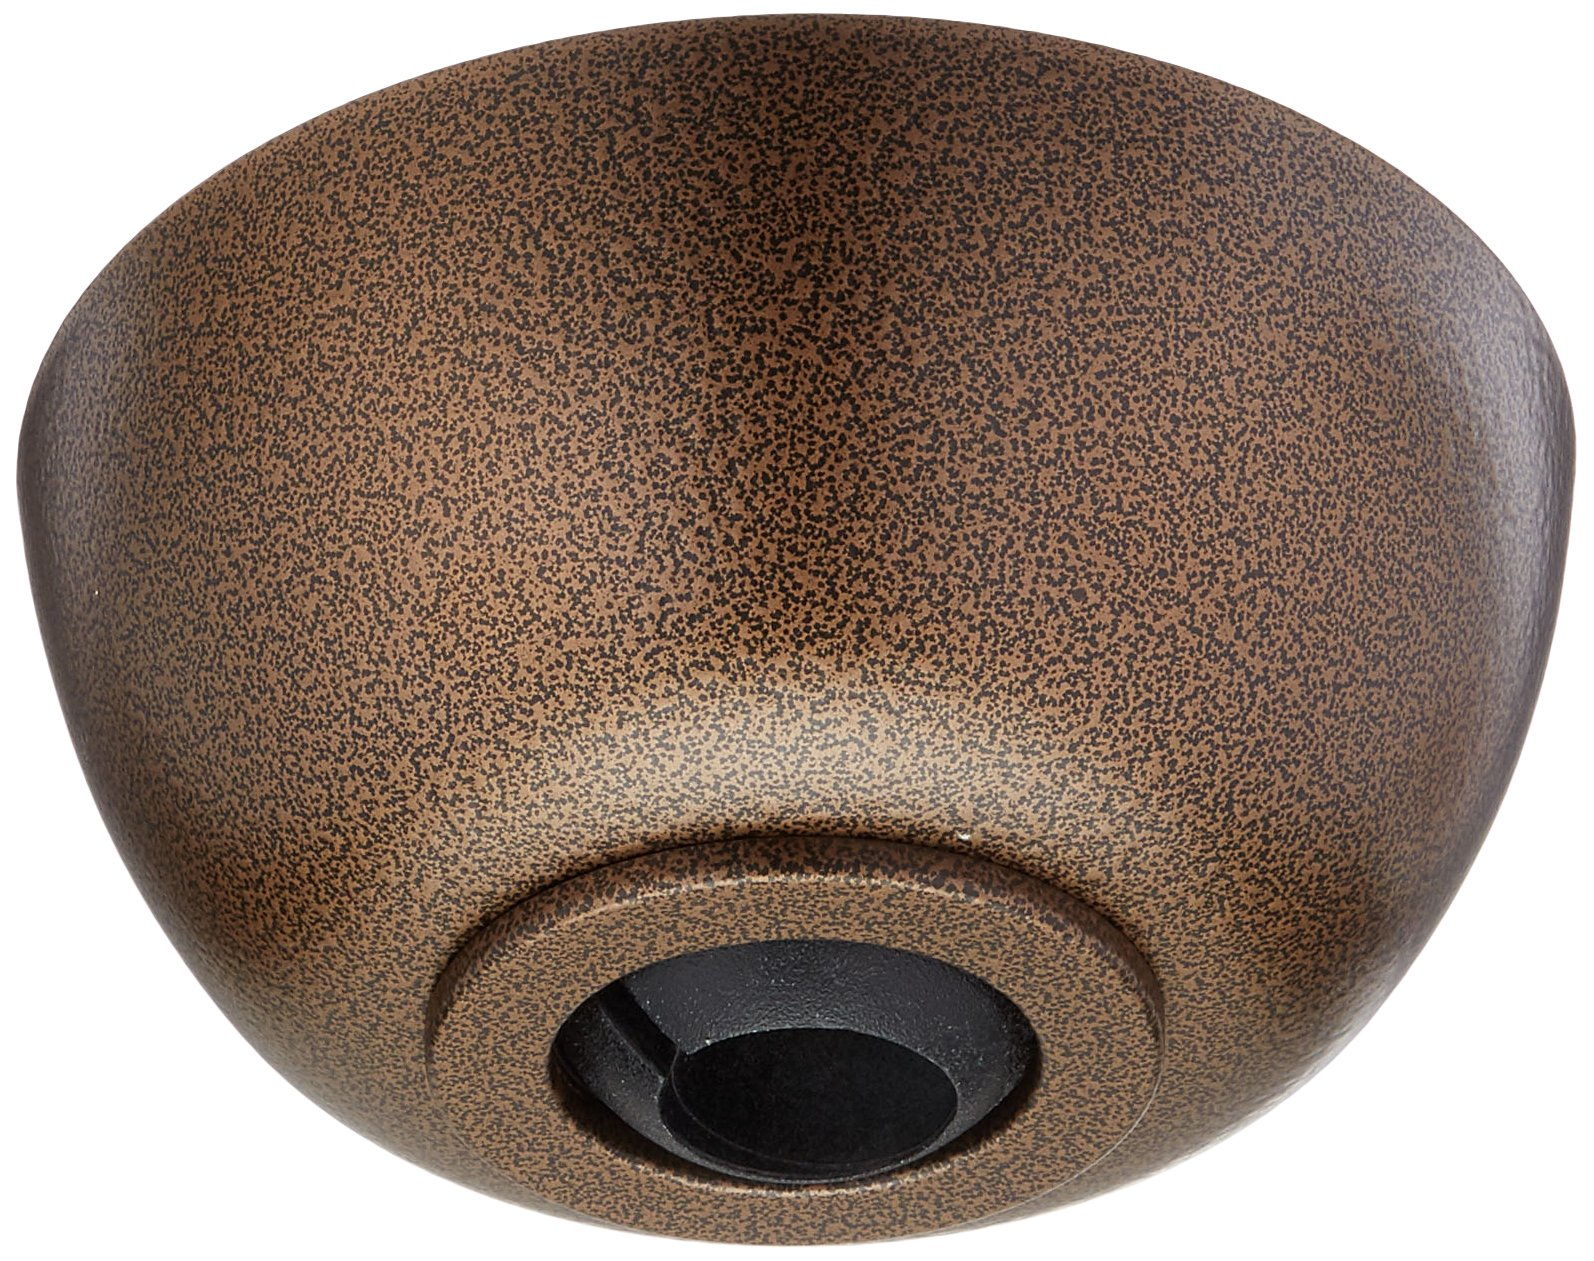 Fanimation SCK1-52AZ Sloped Ceiling Kit, 1-Inch, Aged Bronze by Fanimation